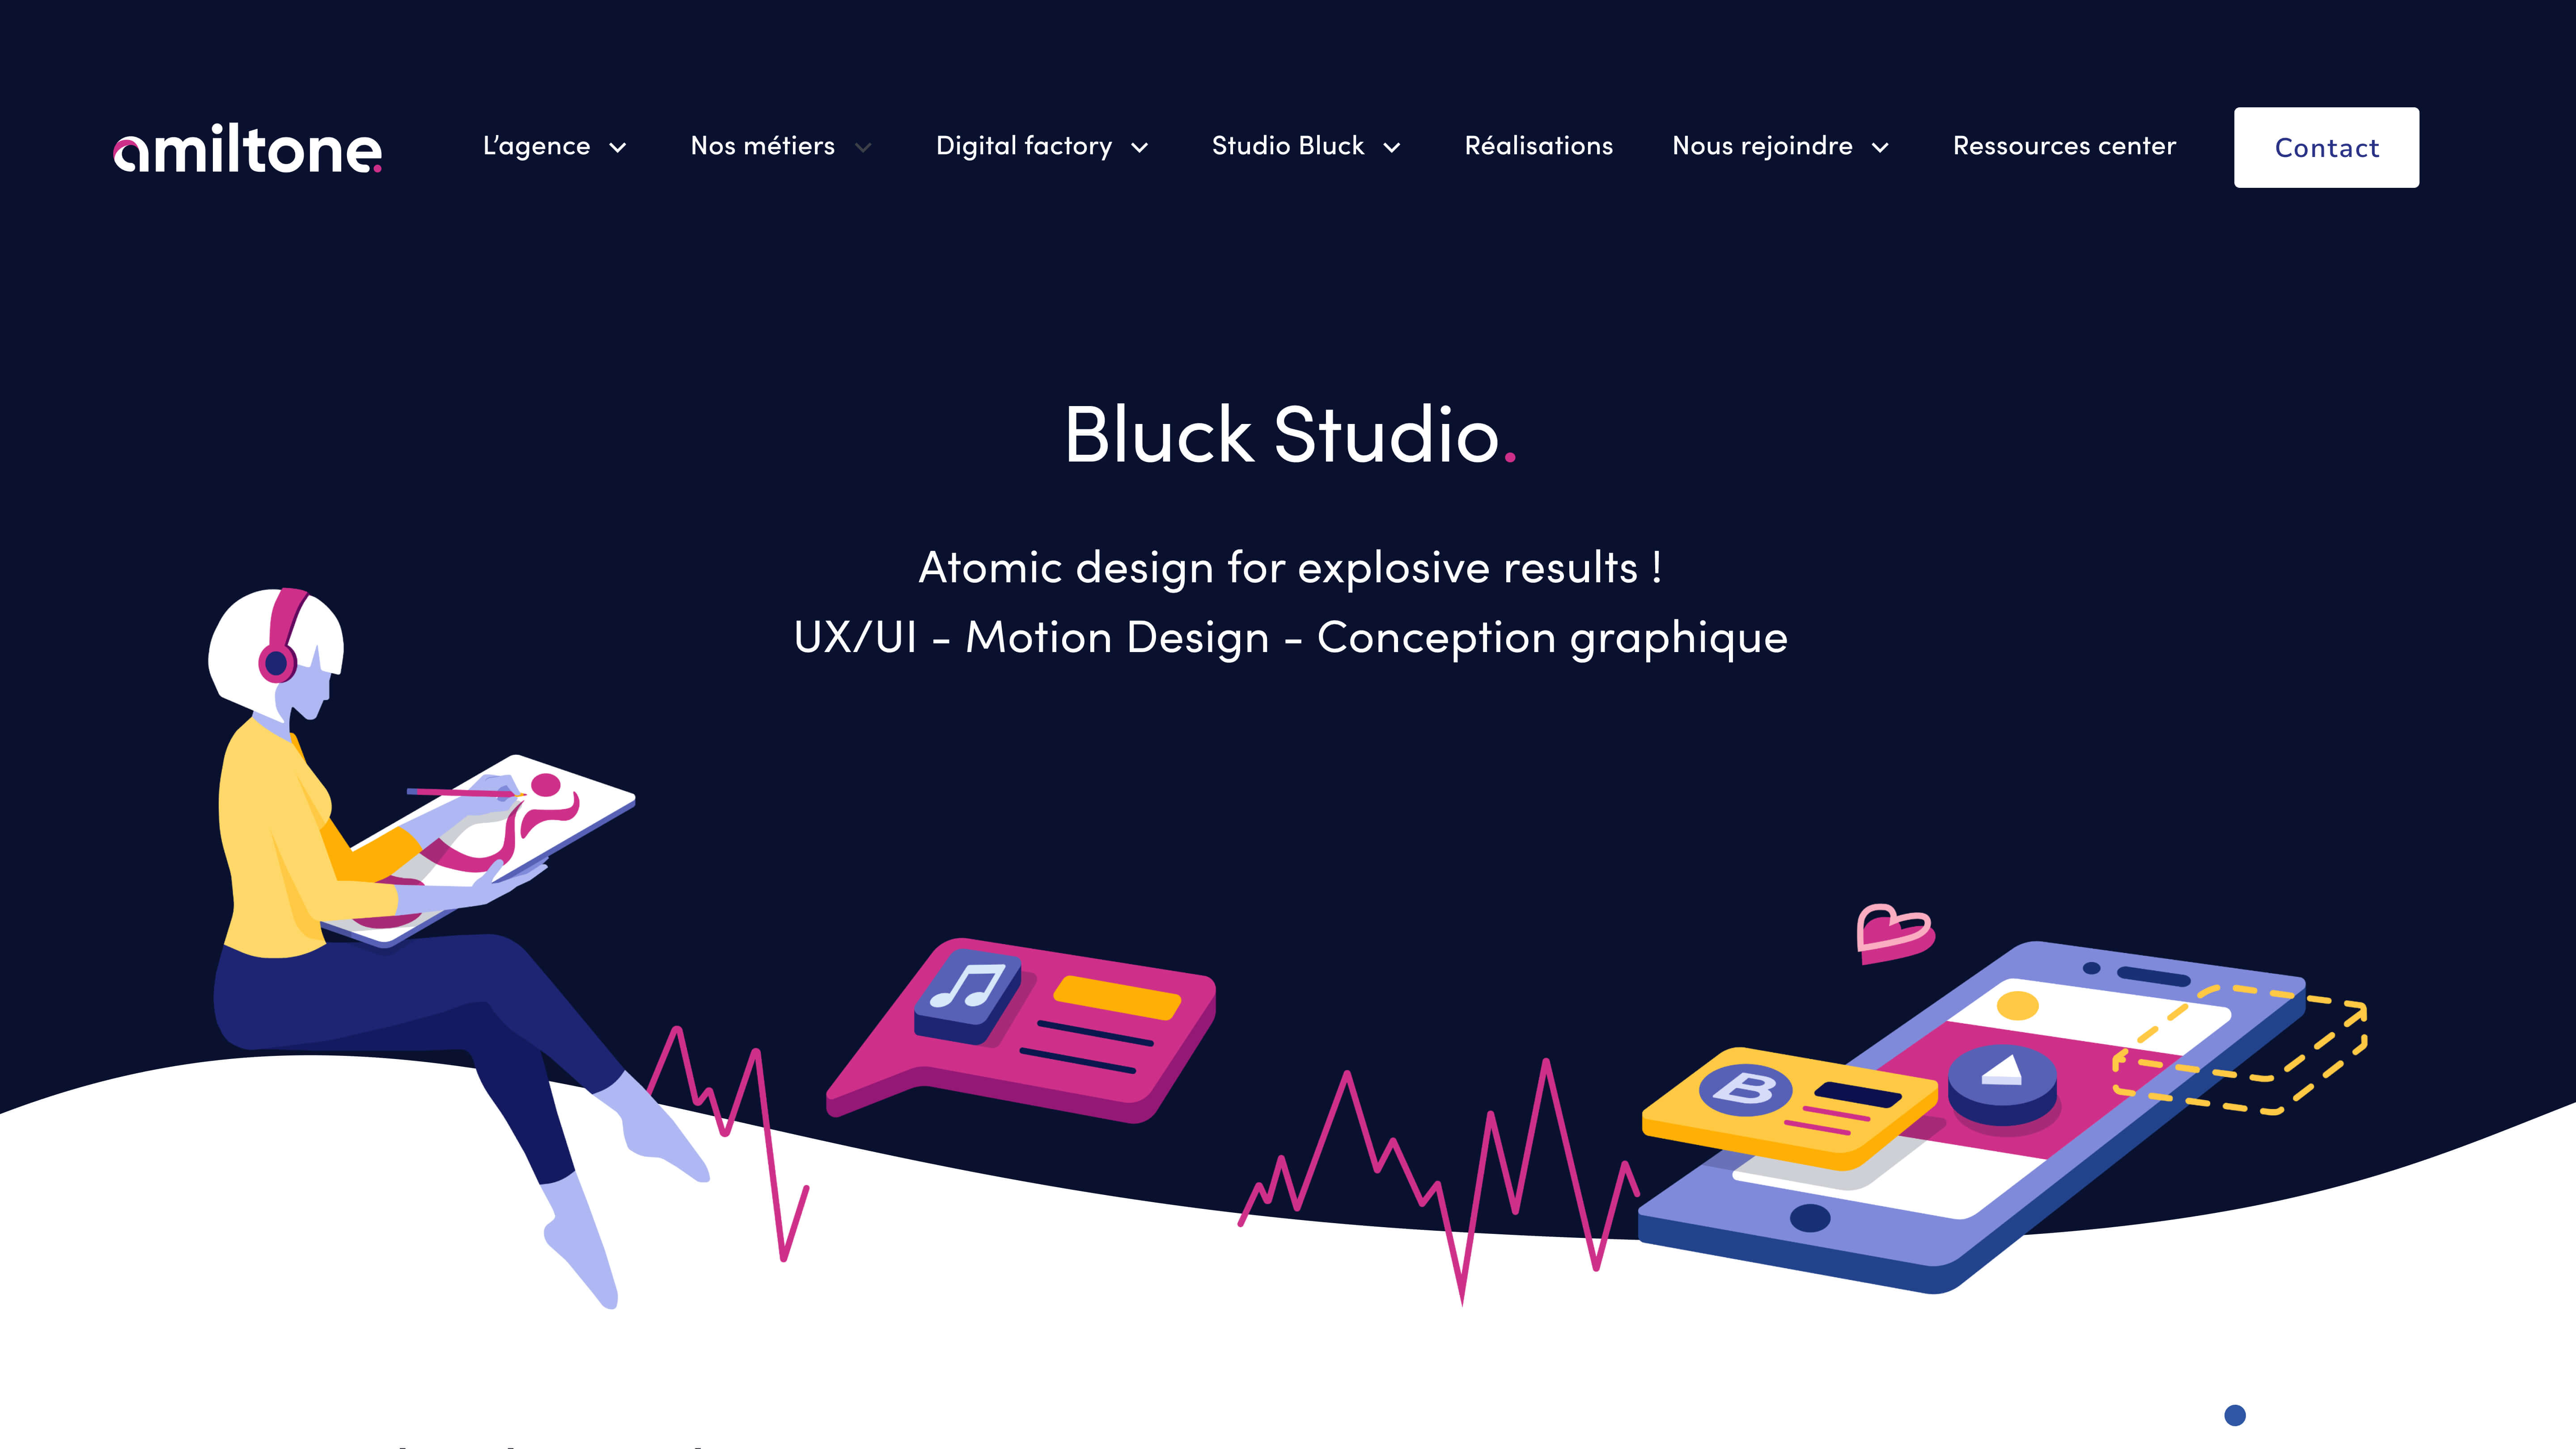 Web interface that illustrates the Bluck studio of the Amiltone agency